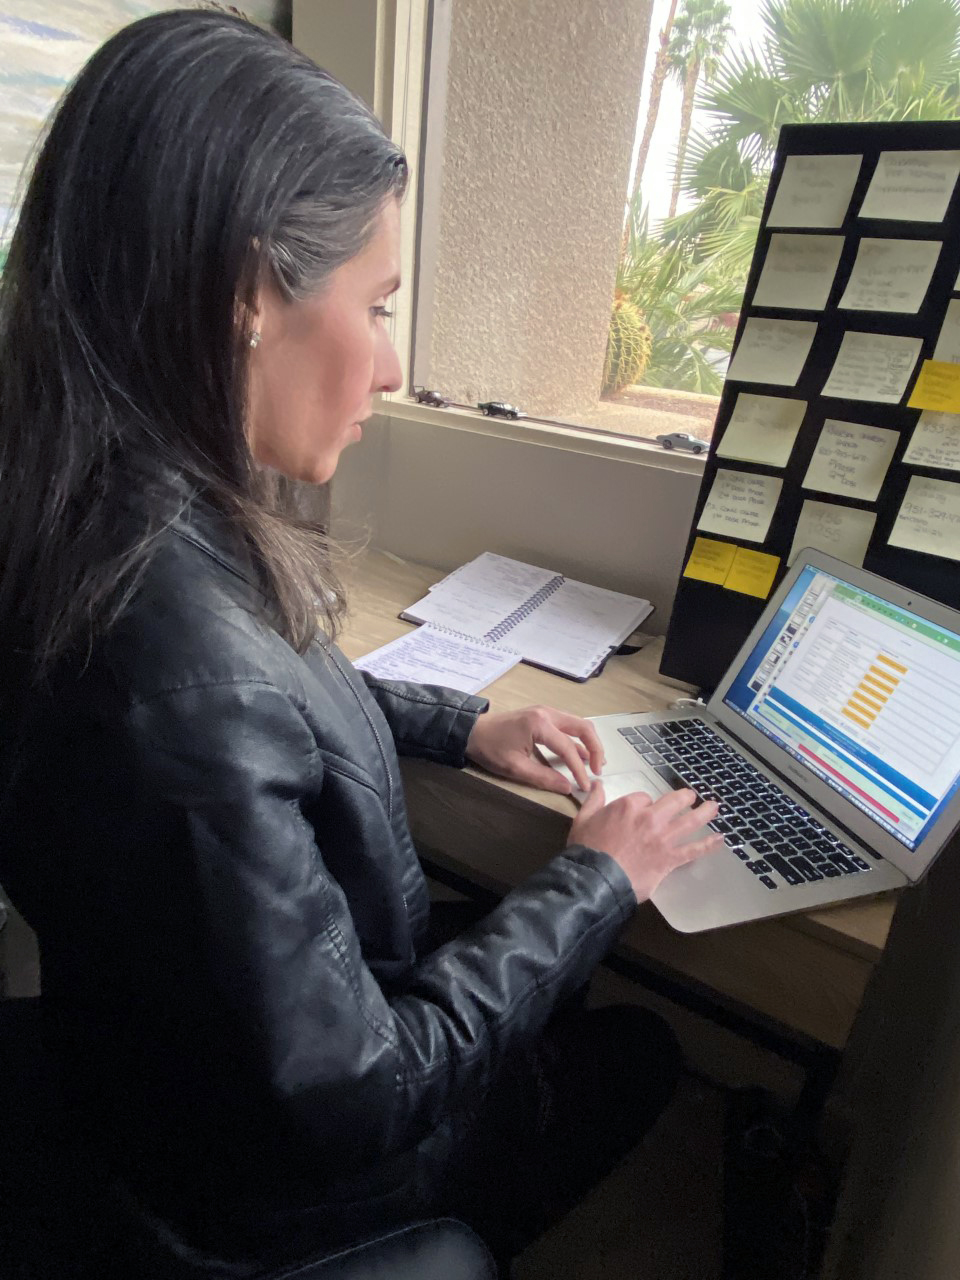 a woman sitting in front of a laptop